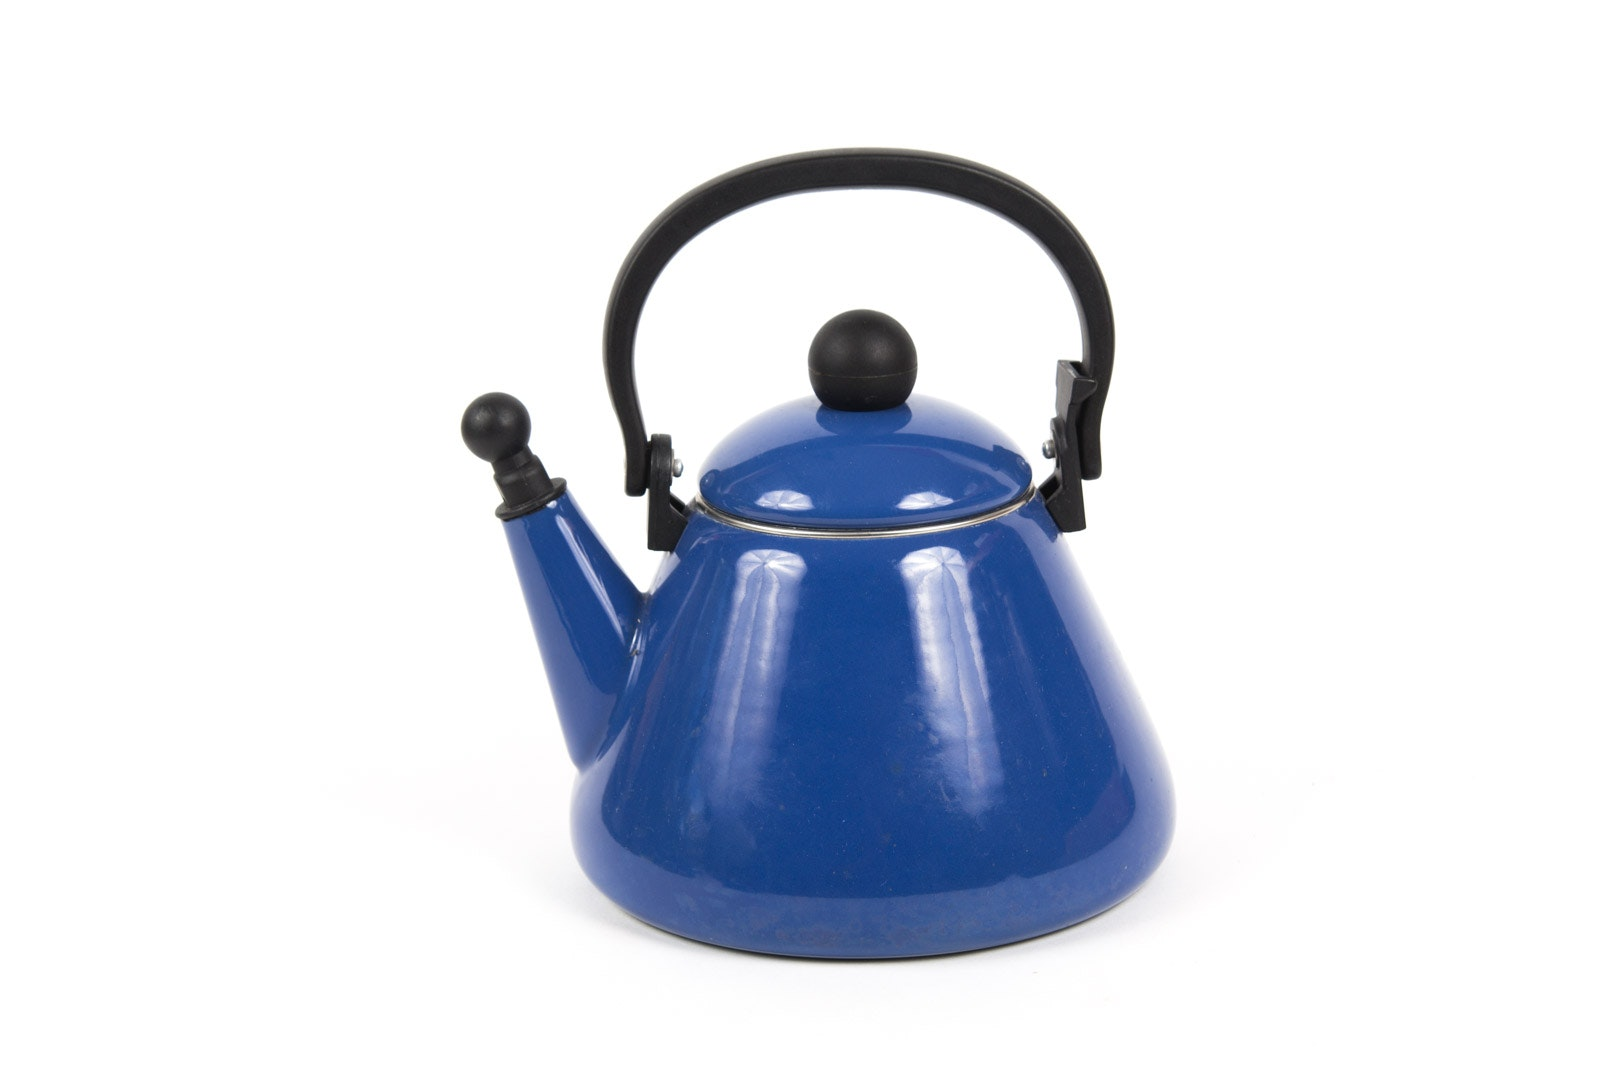 Le Creuset Blue Tea Kettle